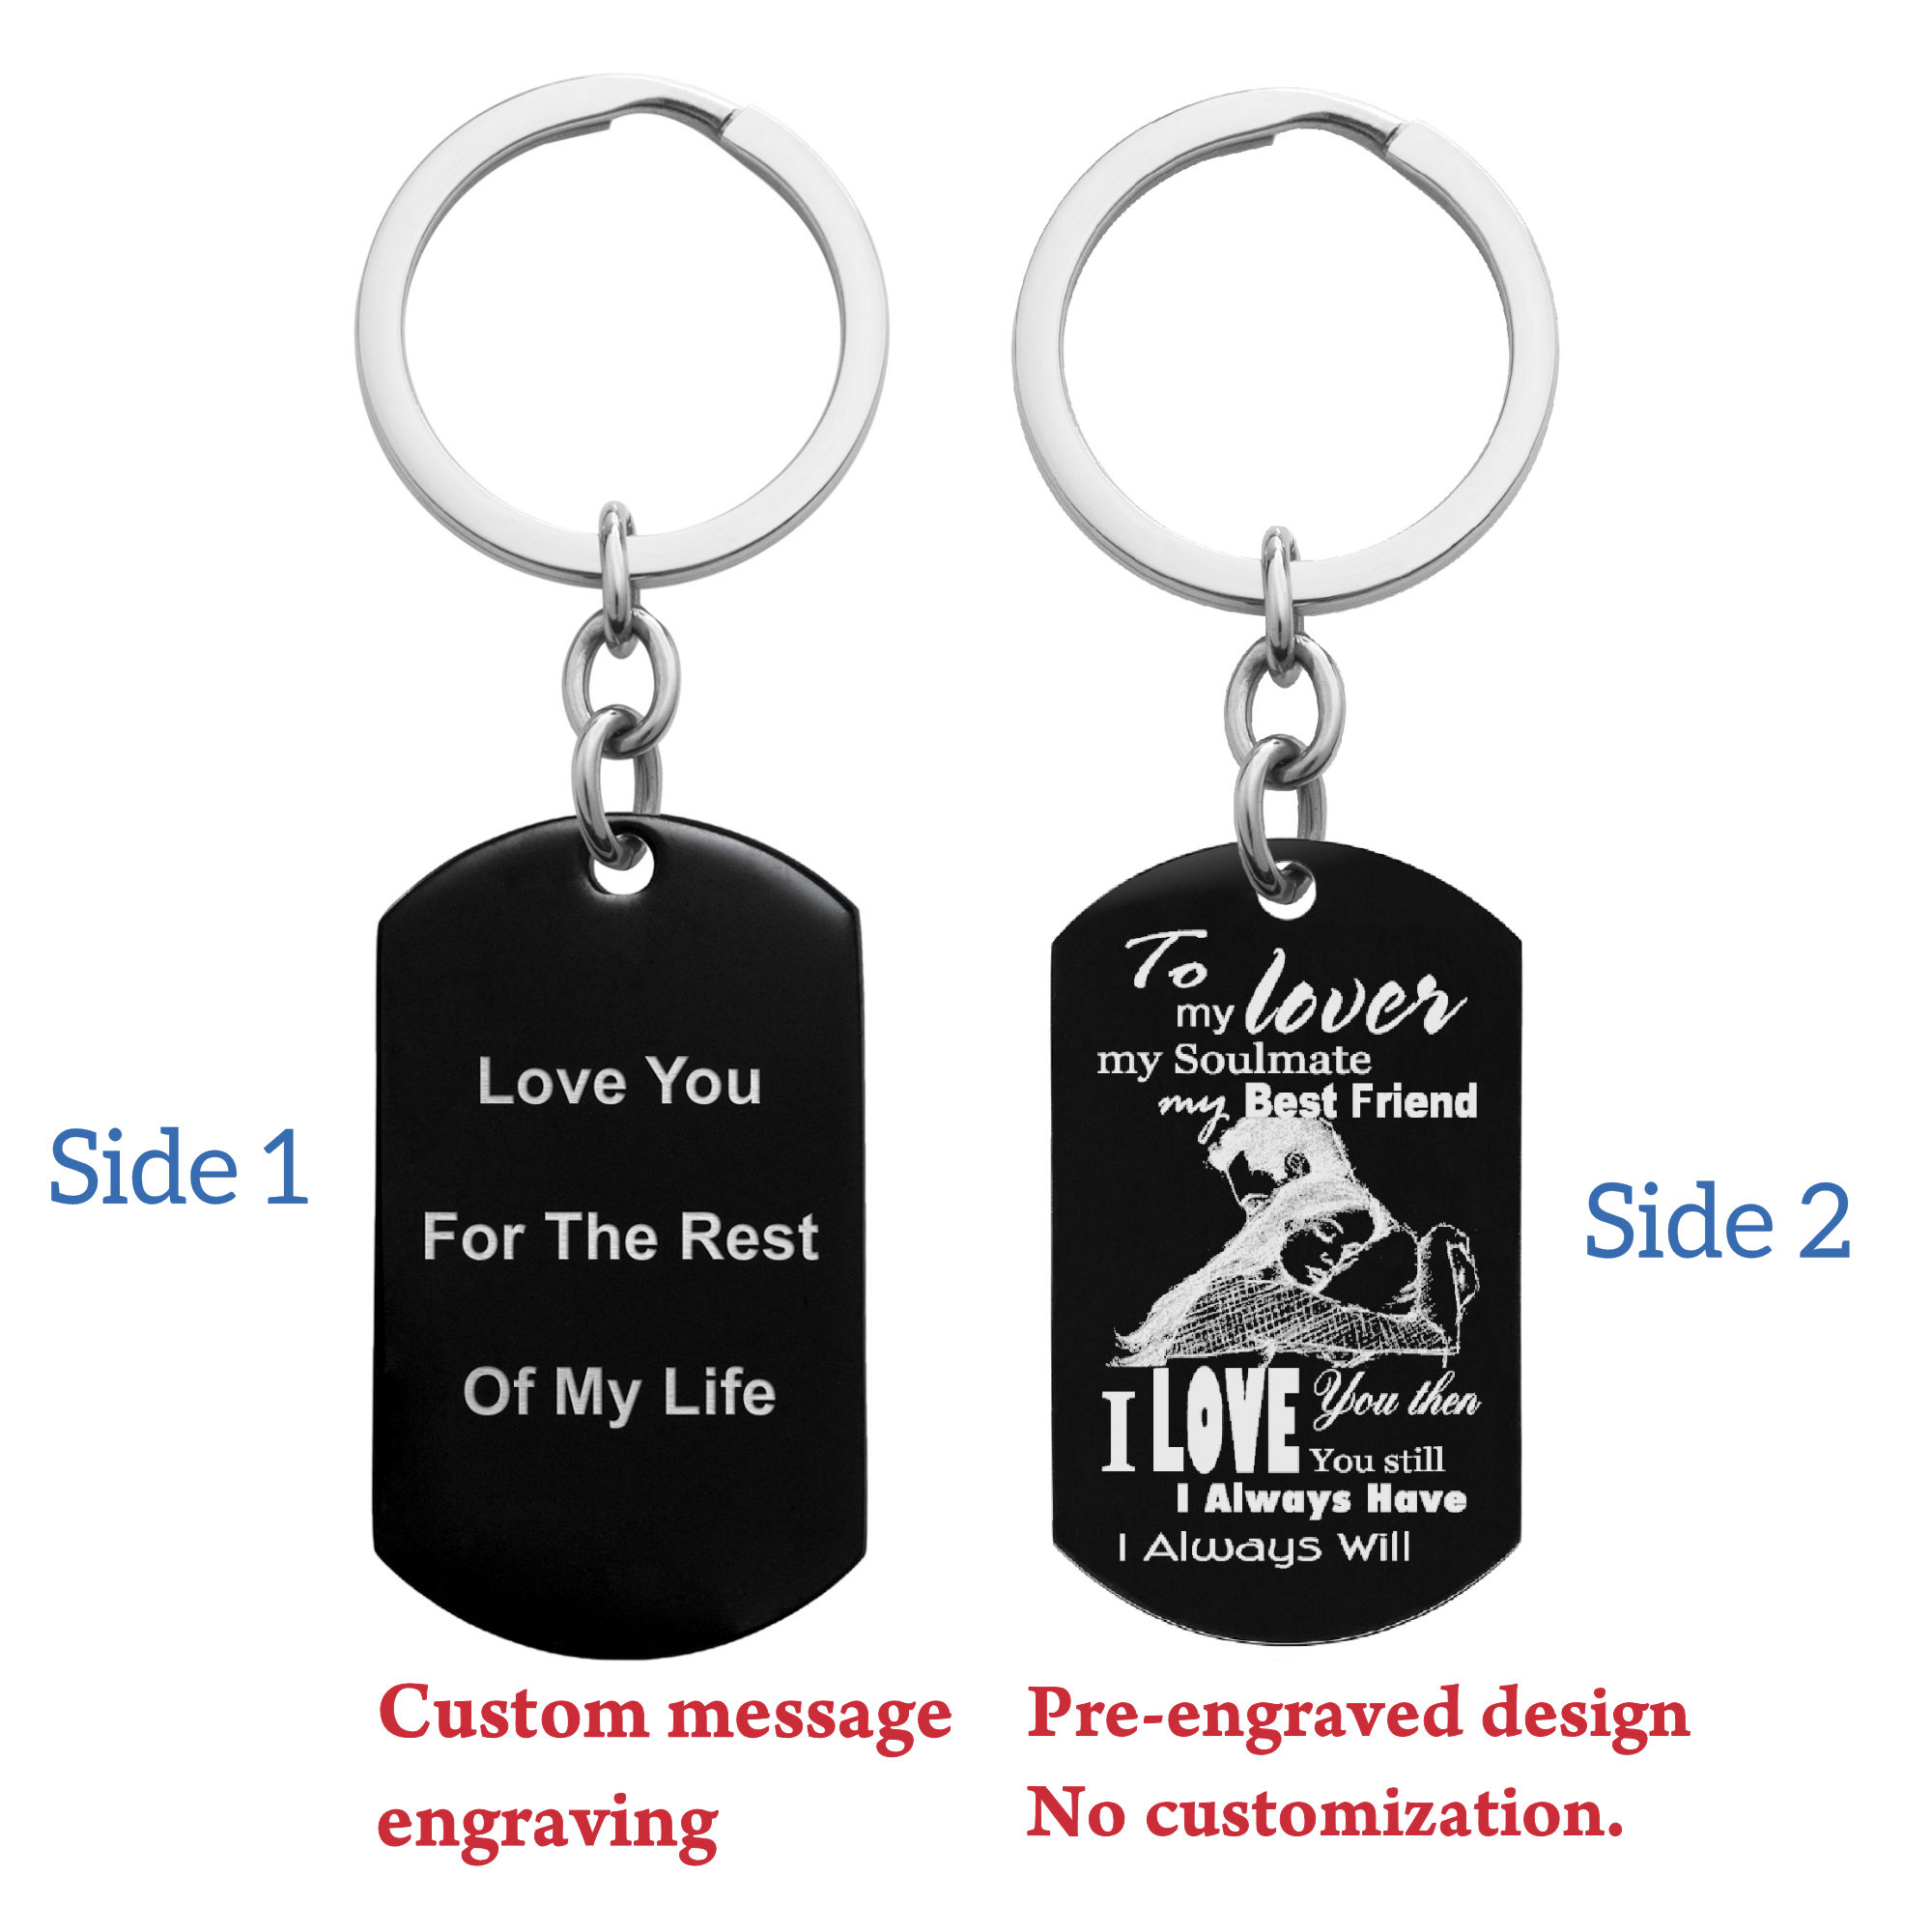 To My Lover My Soulmate My Best Friend Custom Text Engraving Dog Tag Key Chain - Handmade